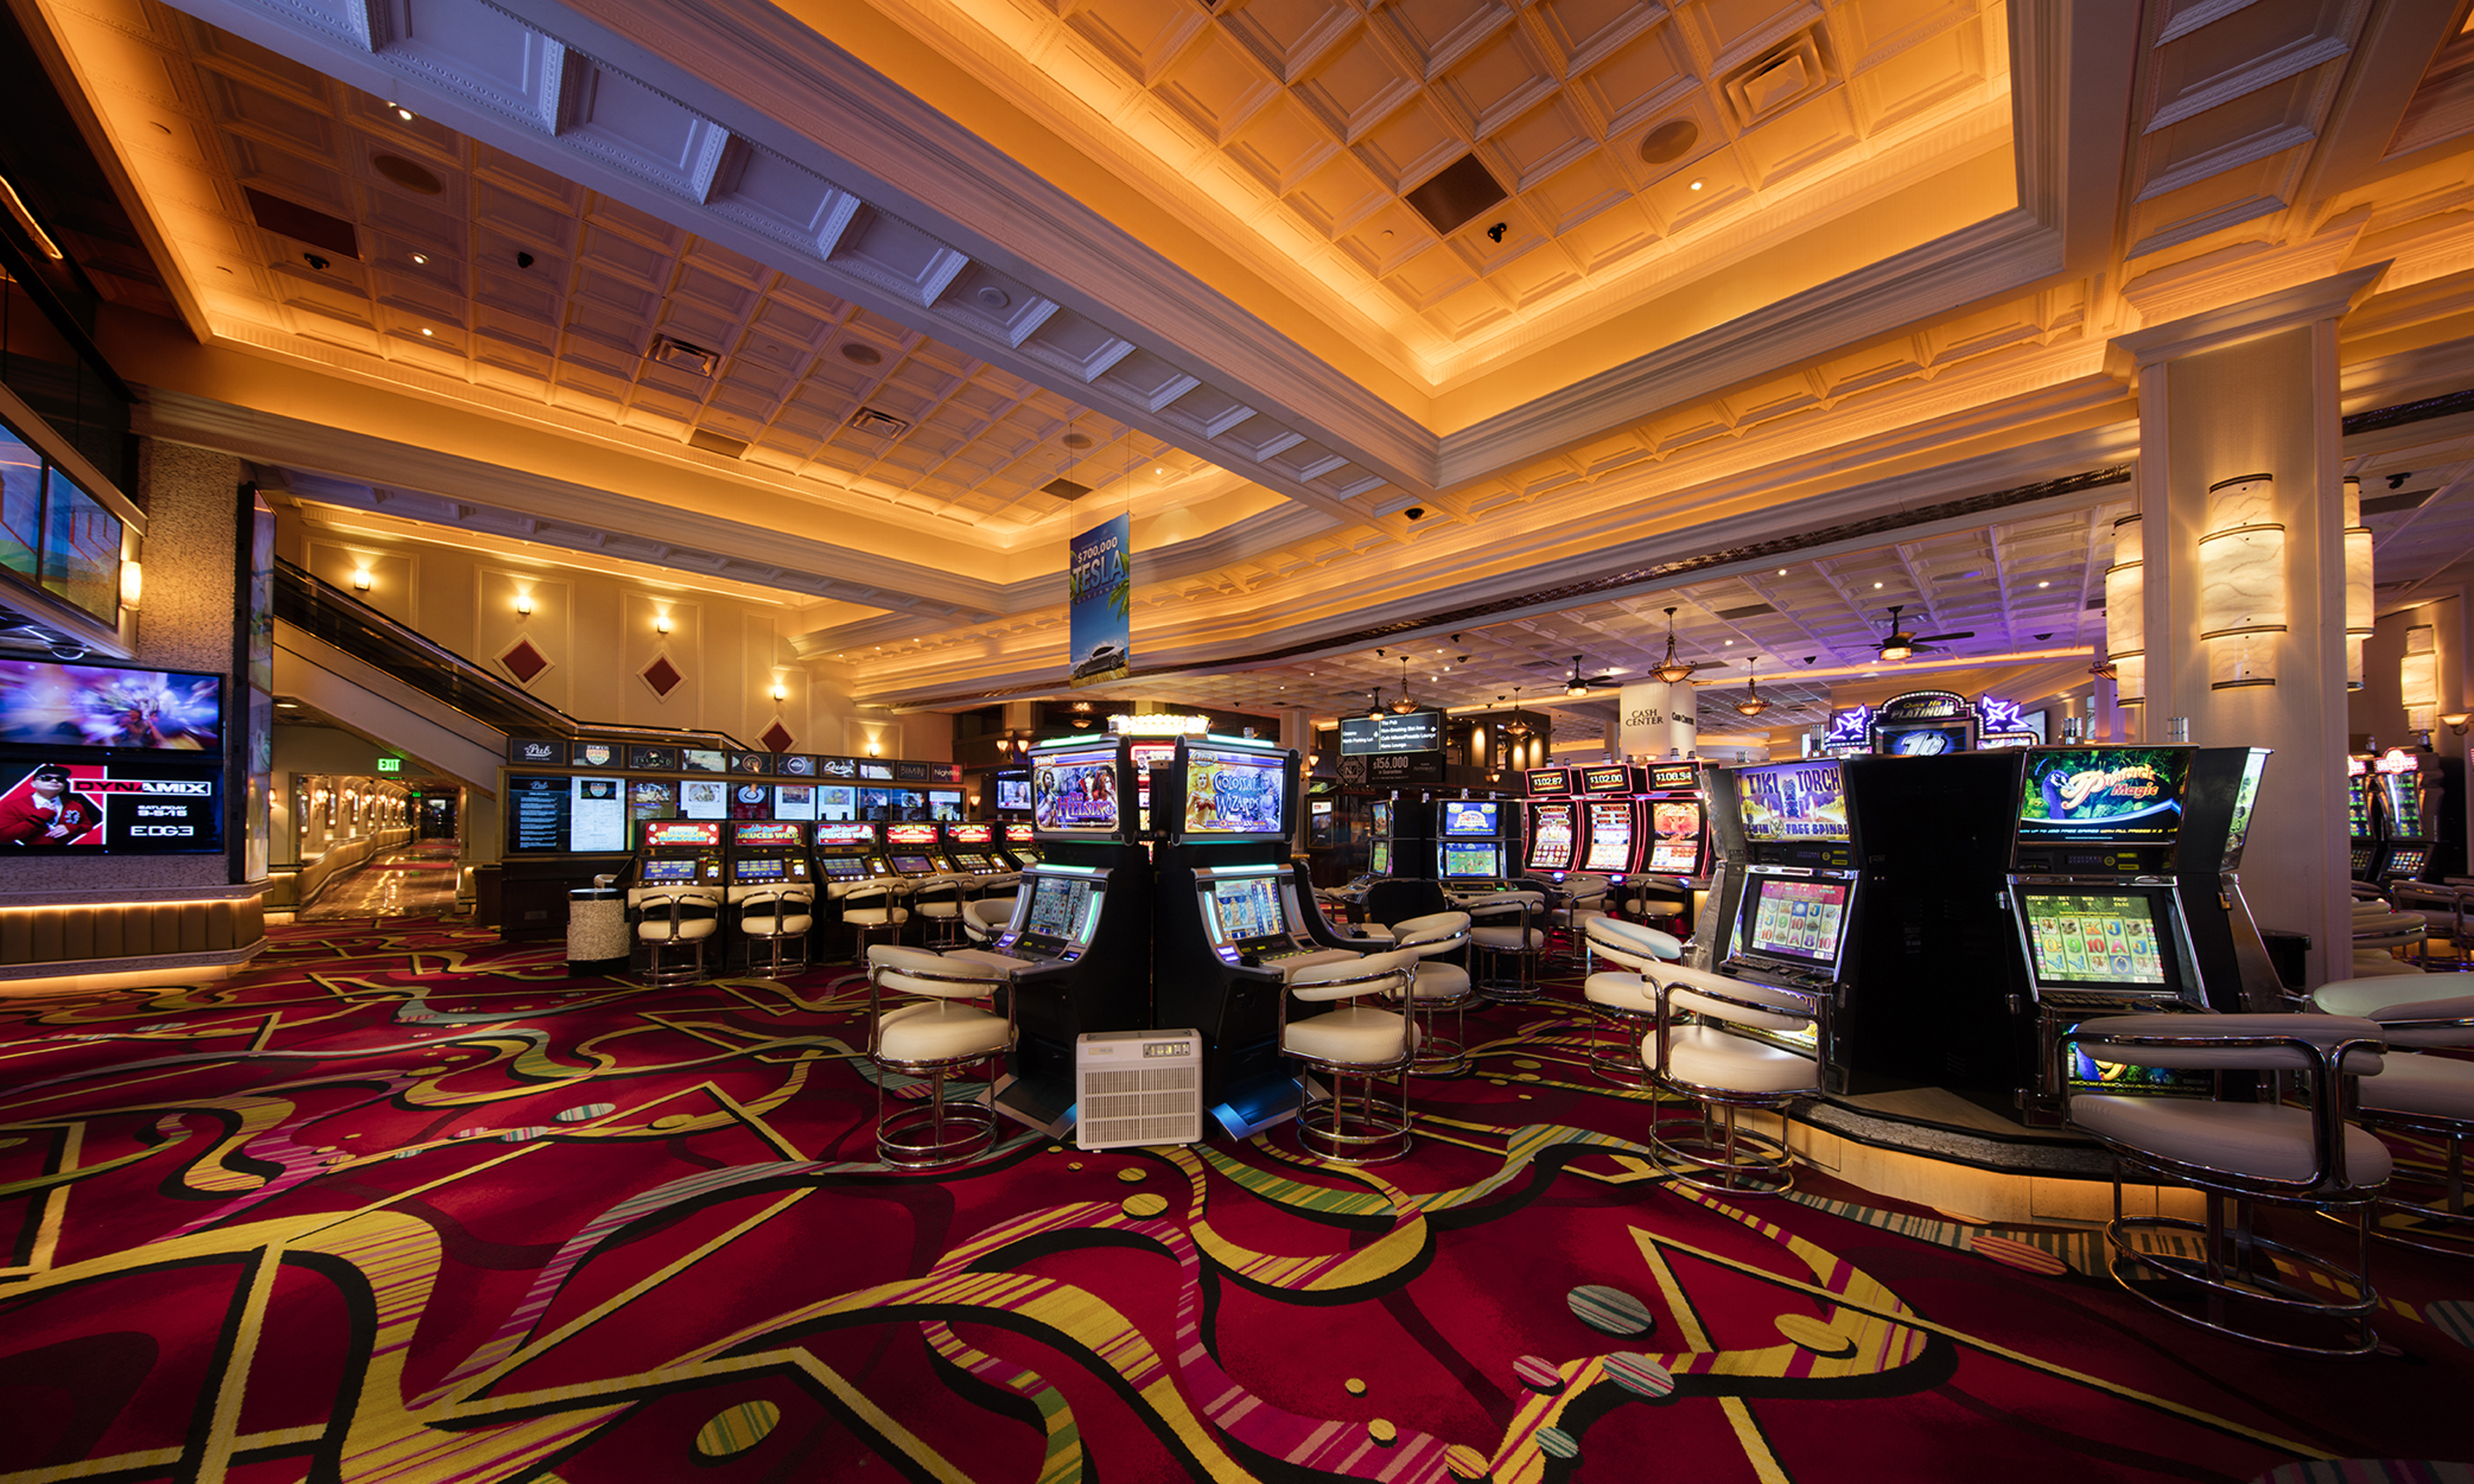 Eldorado casino reno expansion casino queen poker